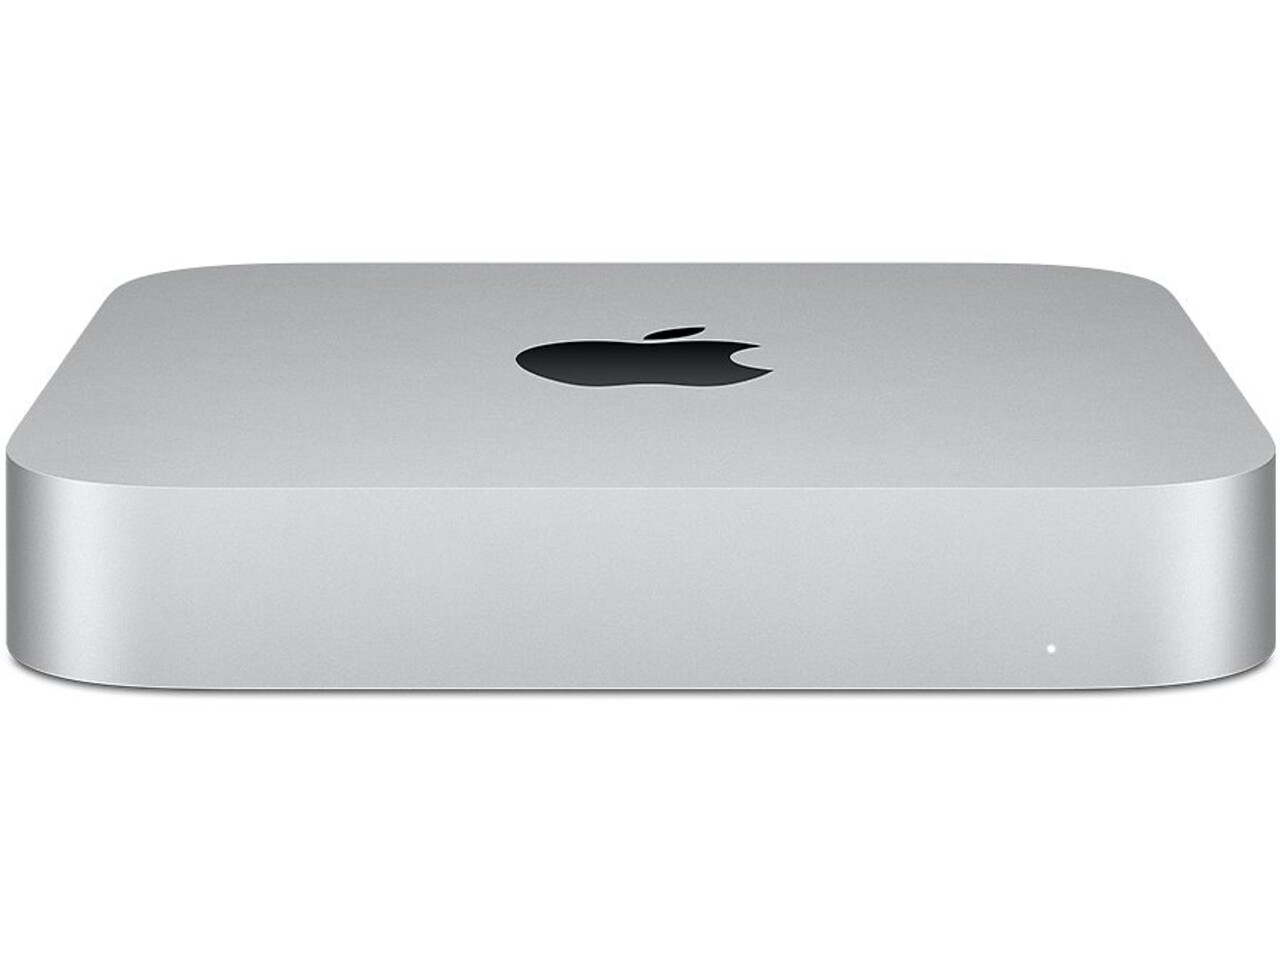 mac mini 2020 silver apple silicon